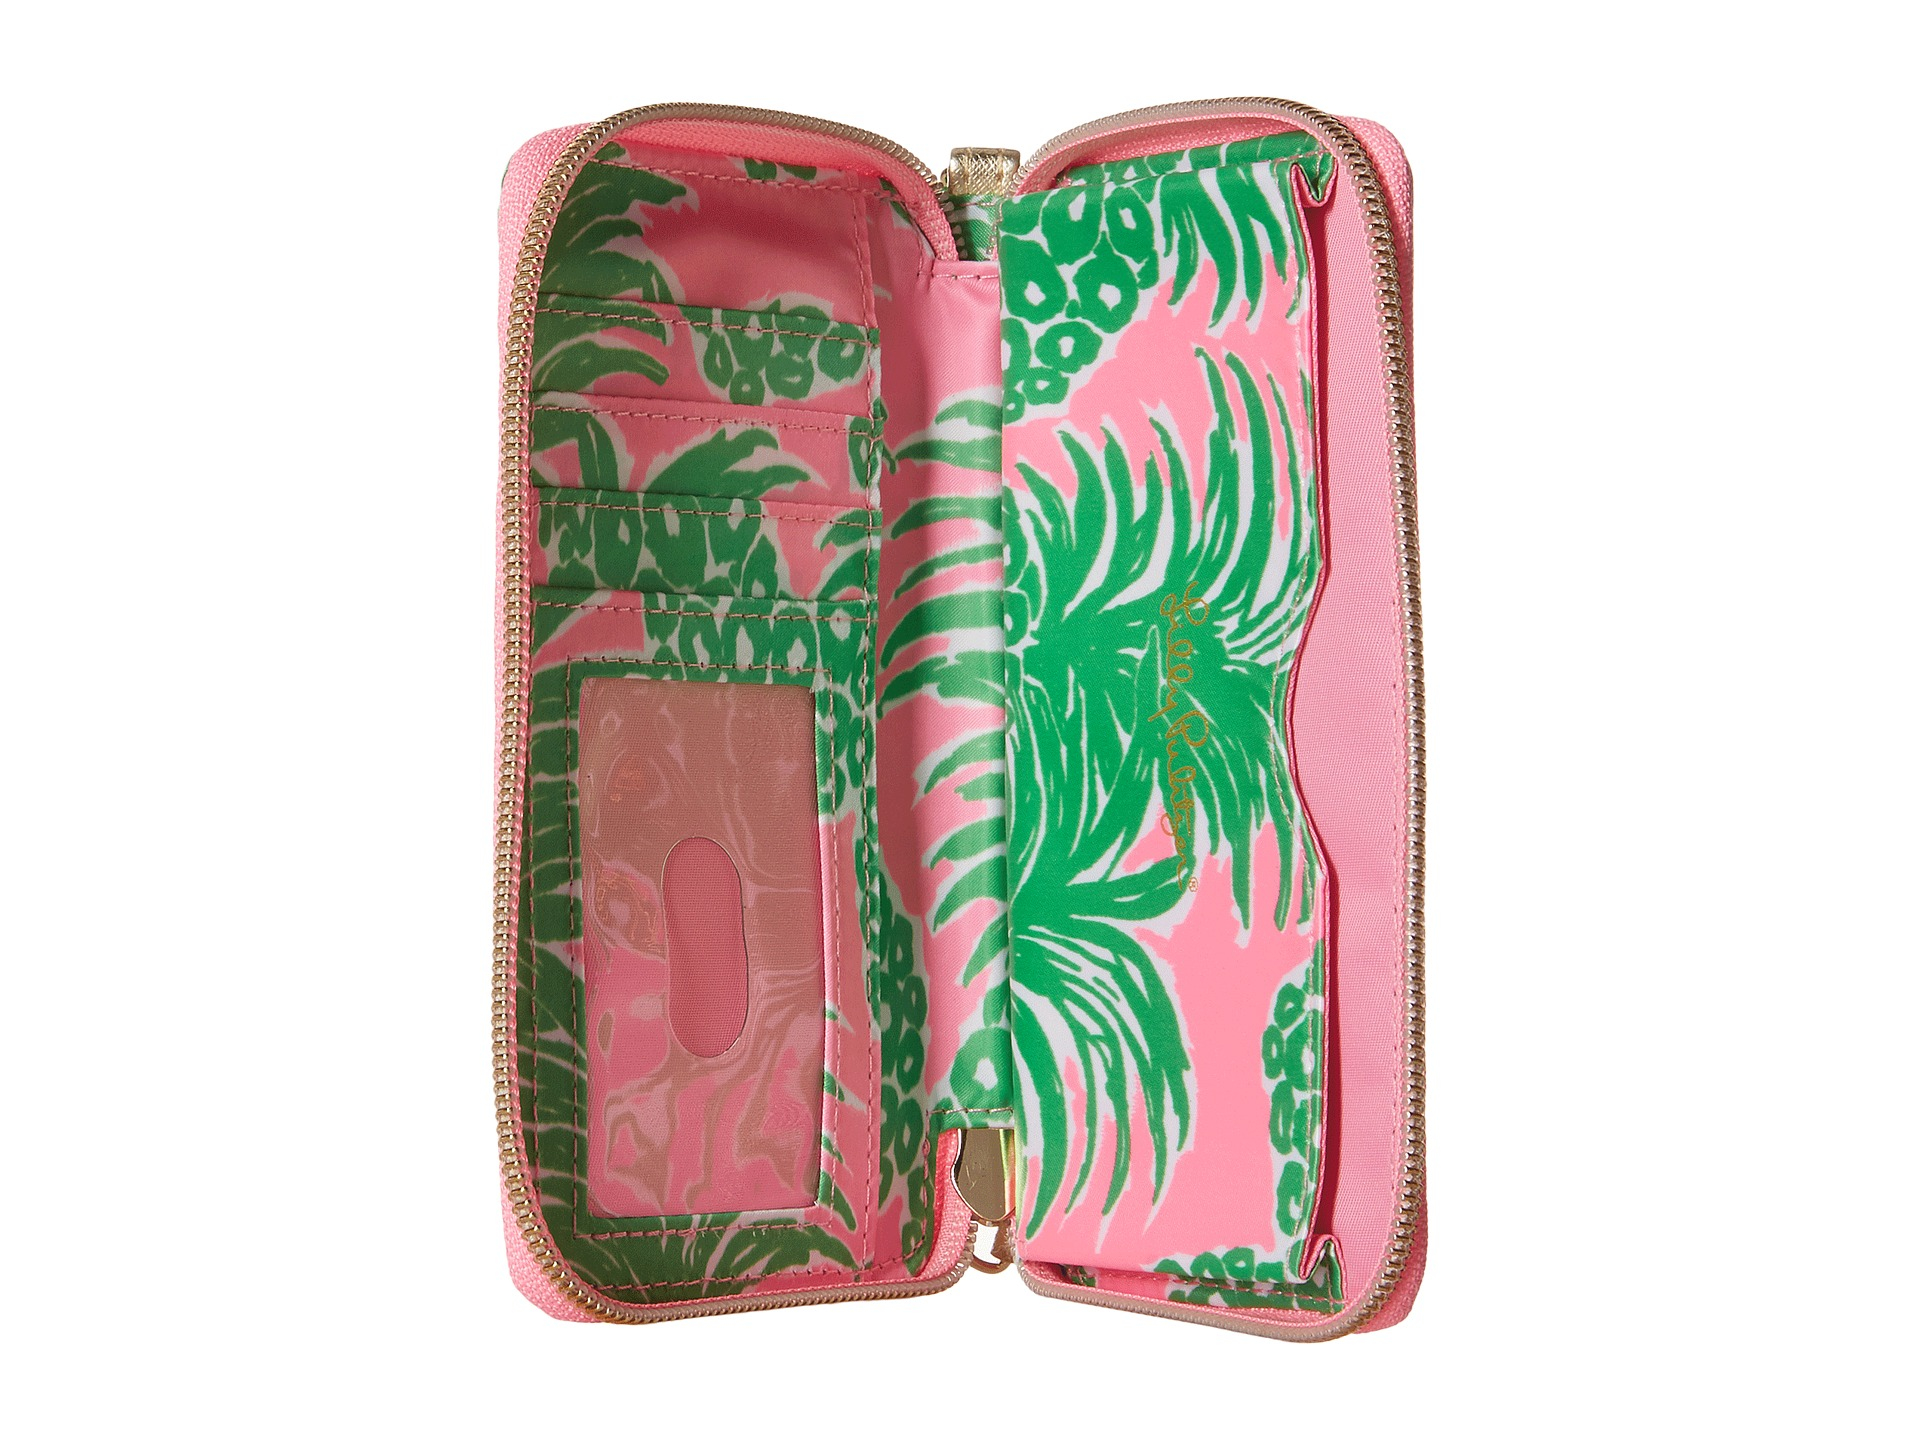 Stylish Cell Phone Cases | Lilly Pulitzer Phone Case | Tech Case Vera Bradley